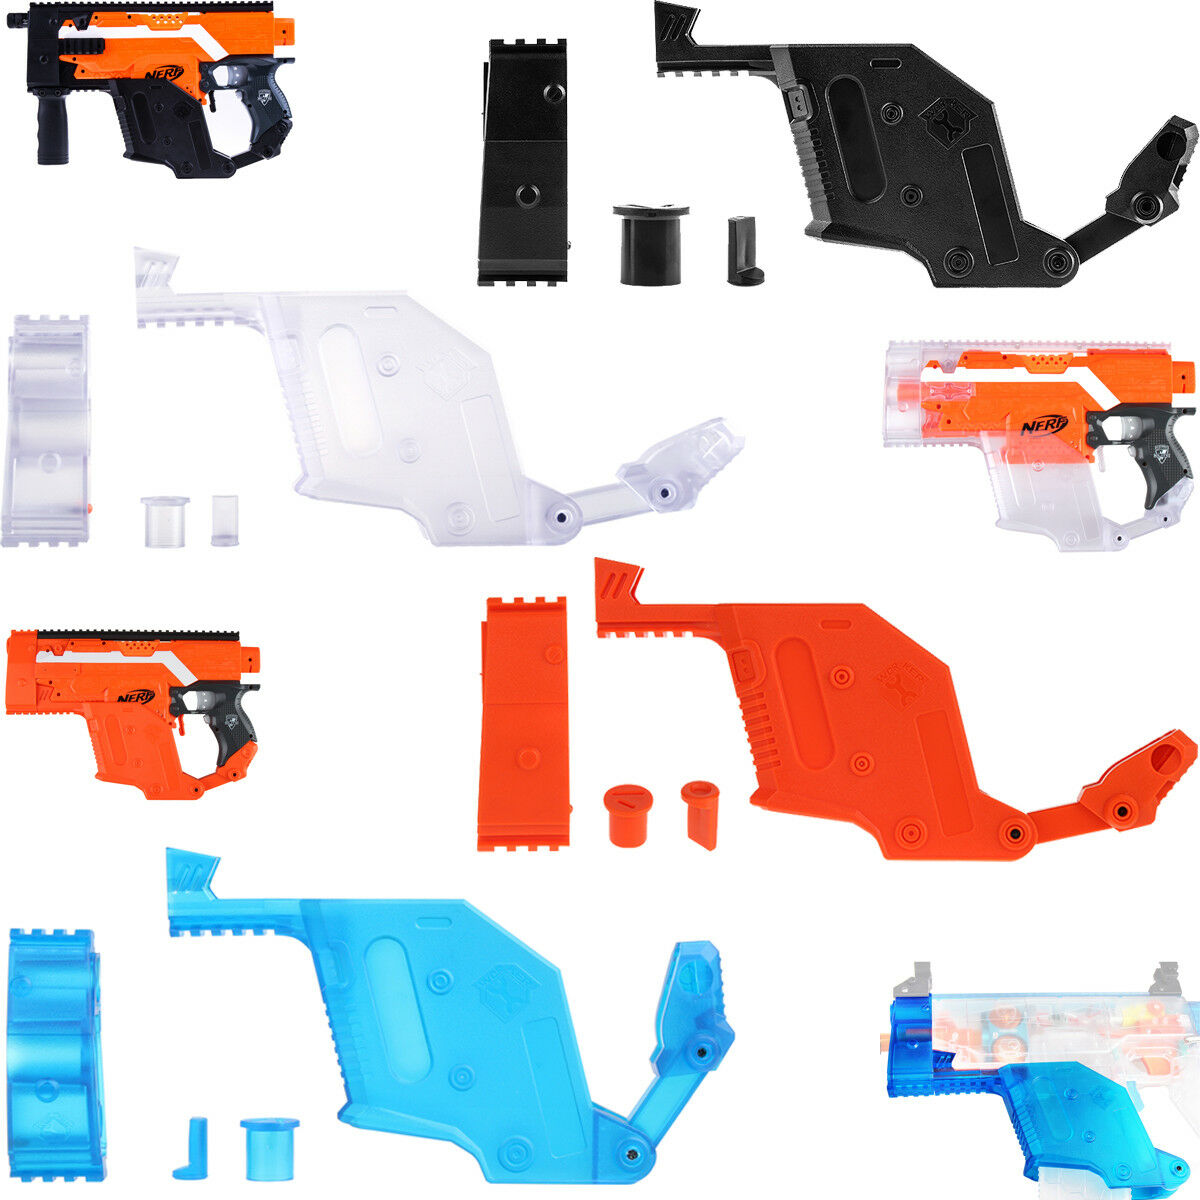 Worker Mod Kits Kriss Vector Body Cover for Nerf Stryfe Modify Toy